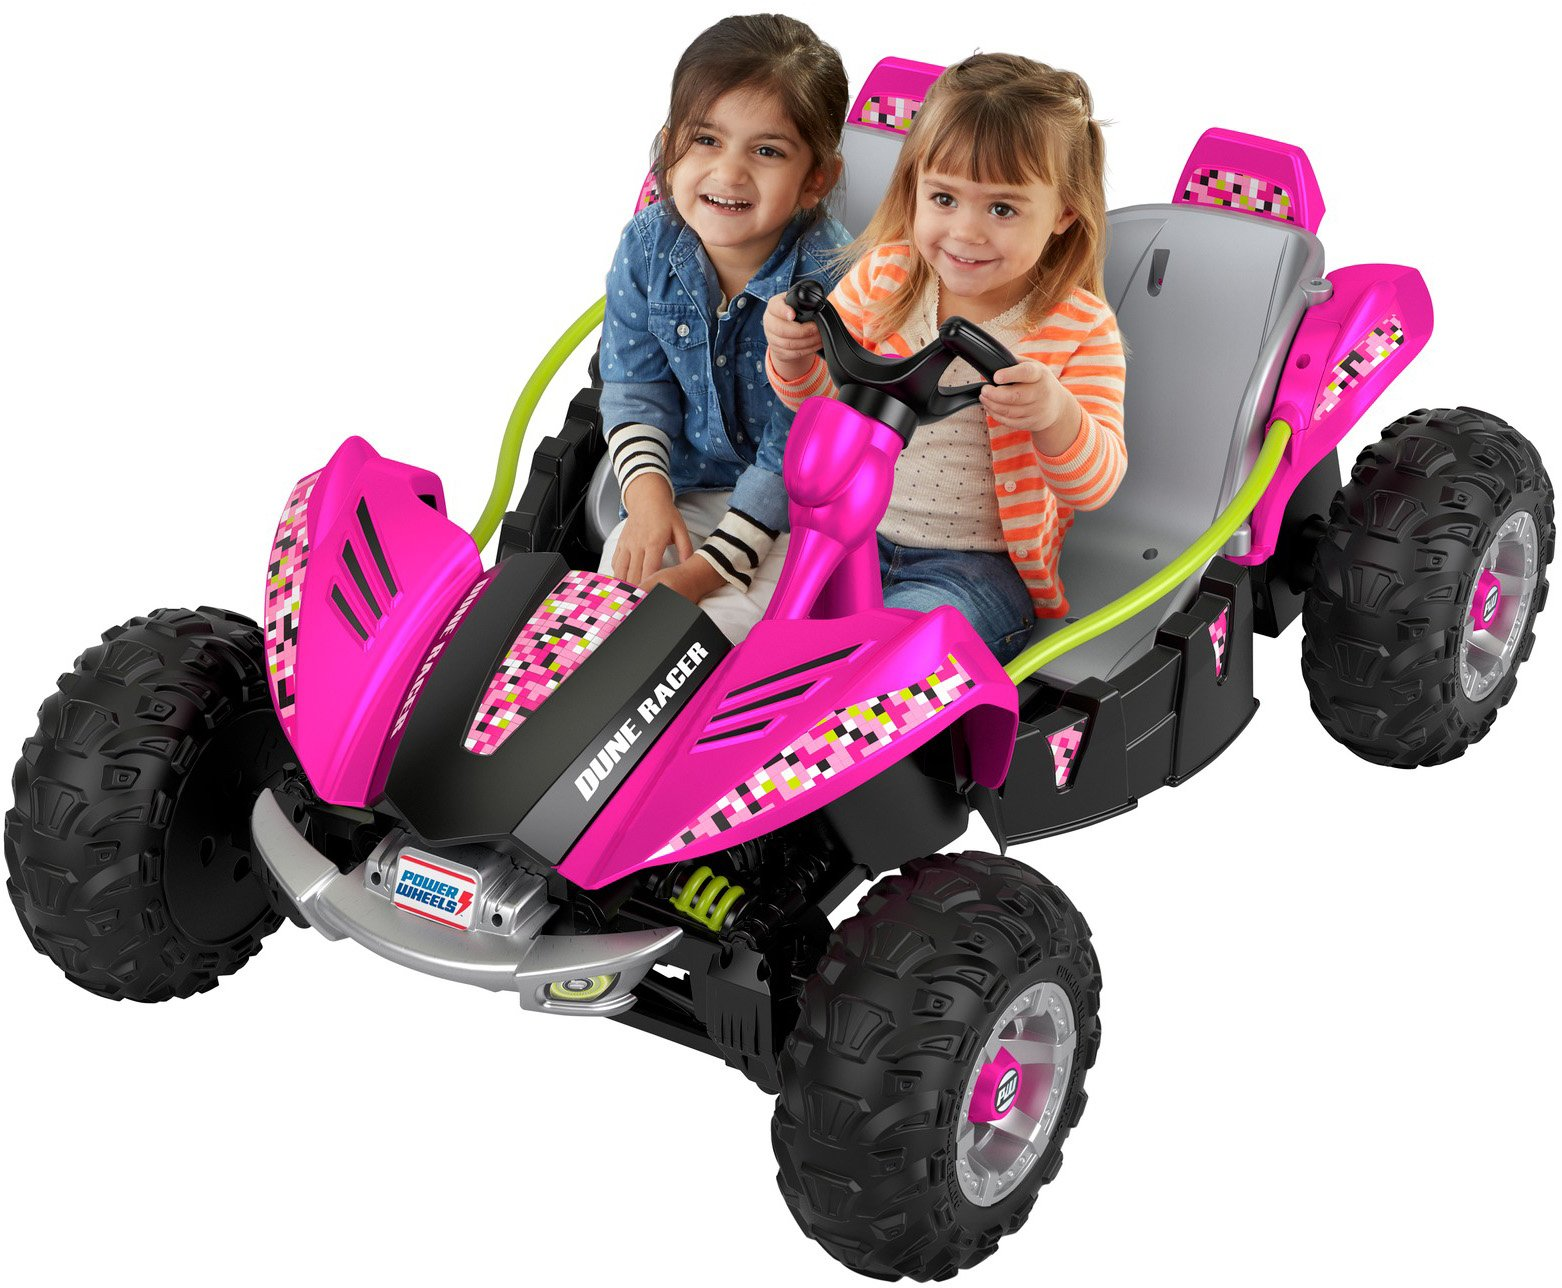 Power Wheels Dune Racer, Pixelated Pink by Fisher-Price